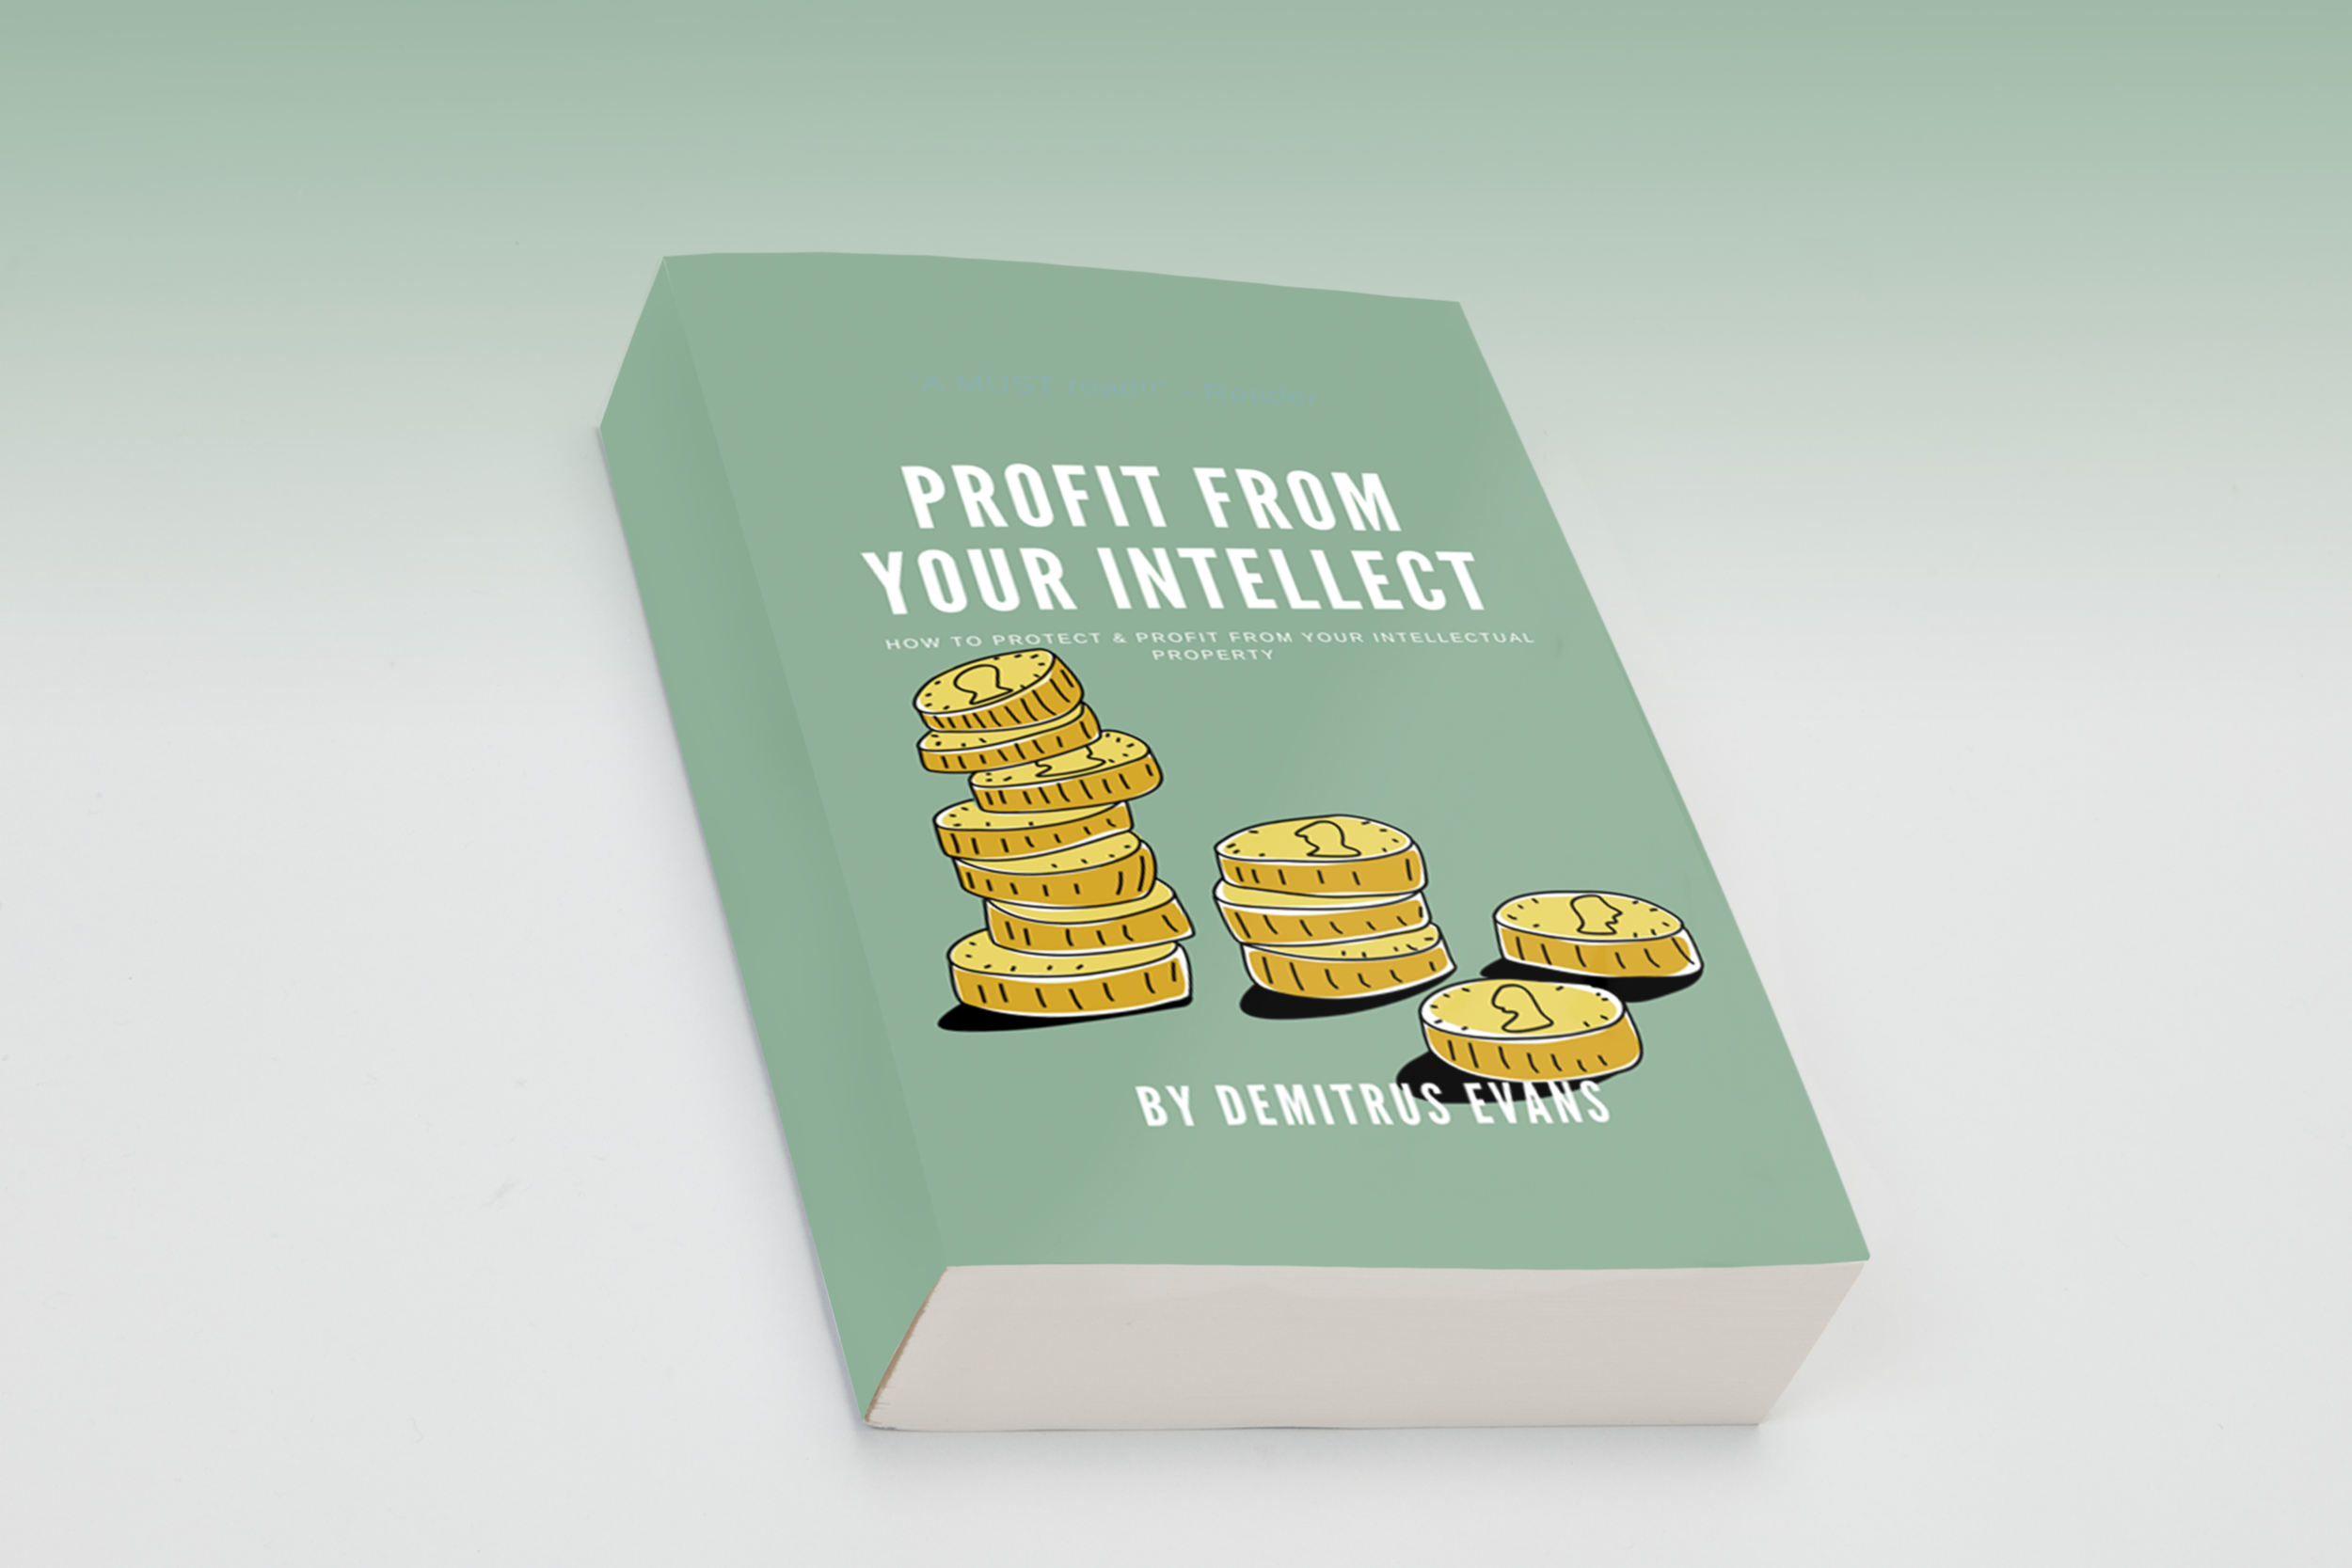 coming soon 2019 - Profit From Your Intellect: How To Protect & Profit From Your Intellectual Property by Demitrus Evans